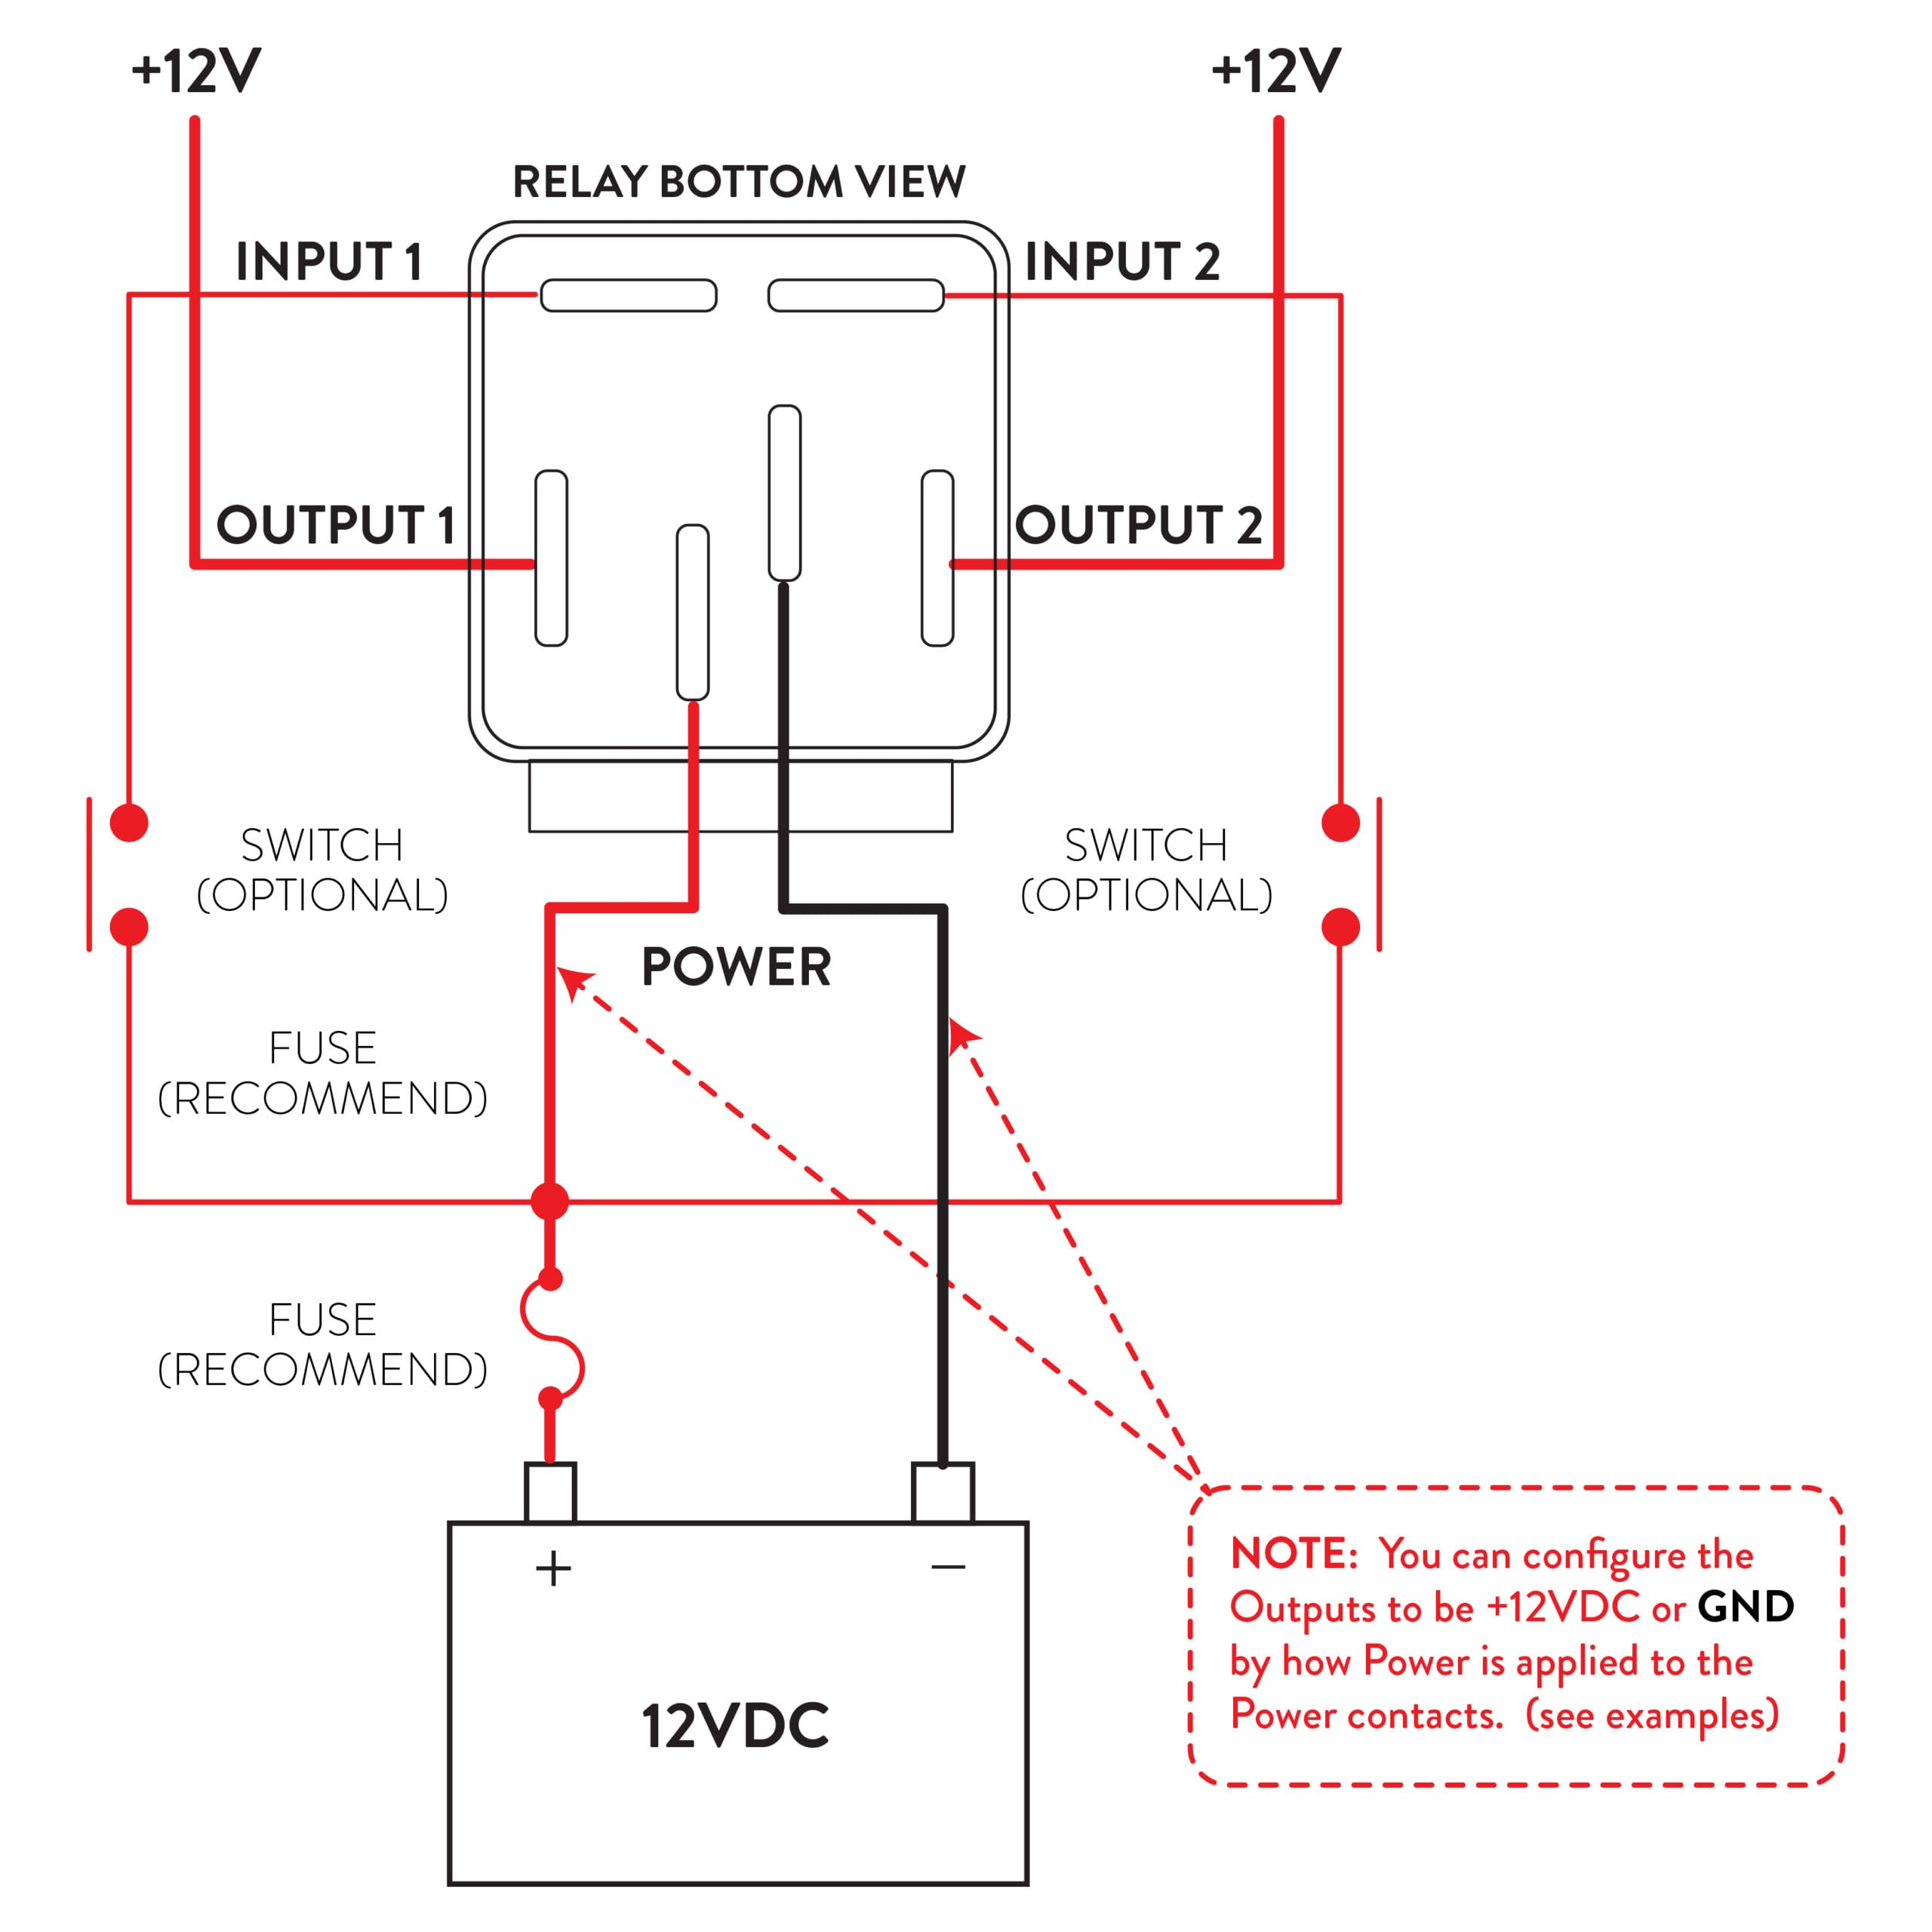 IQ RELAY WIRING GRAPHICS FOR WEBSITE WIRING 01